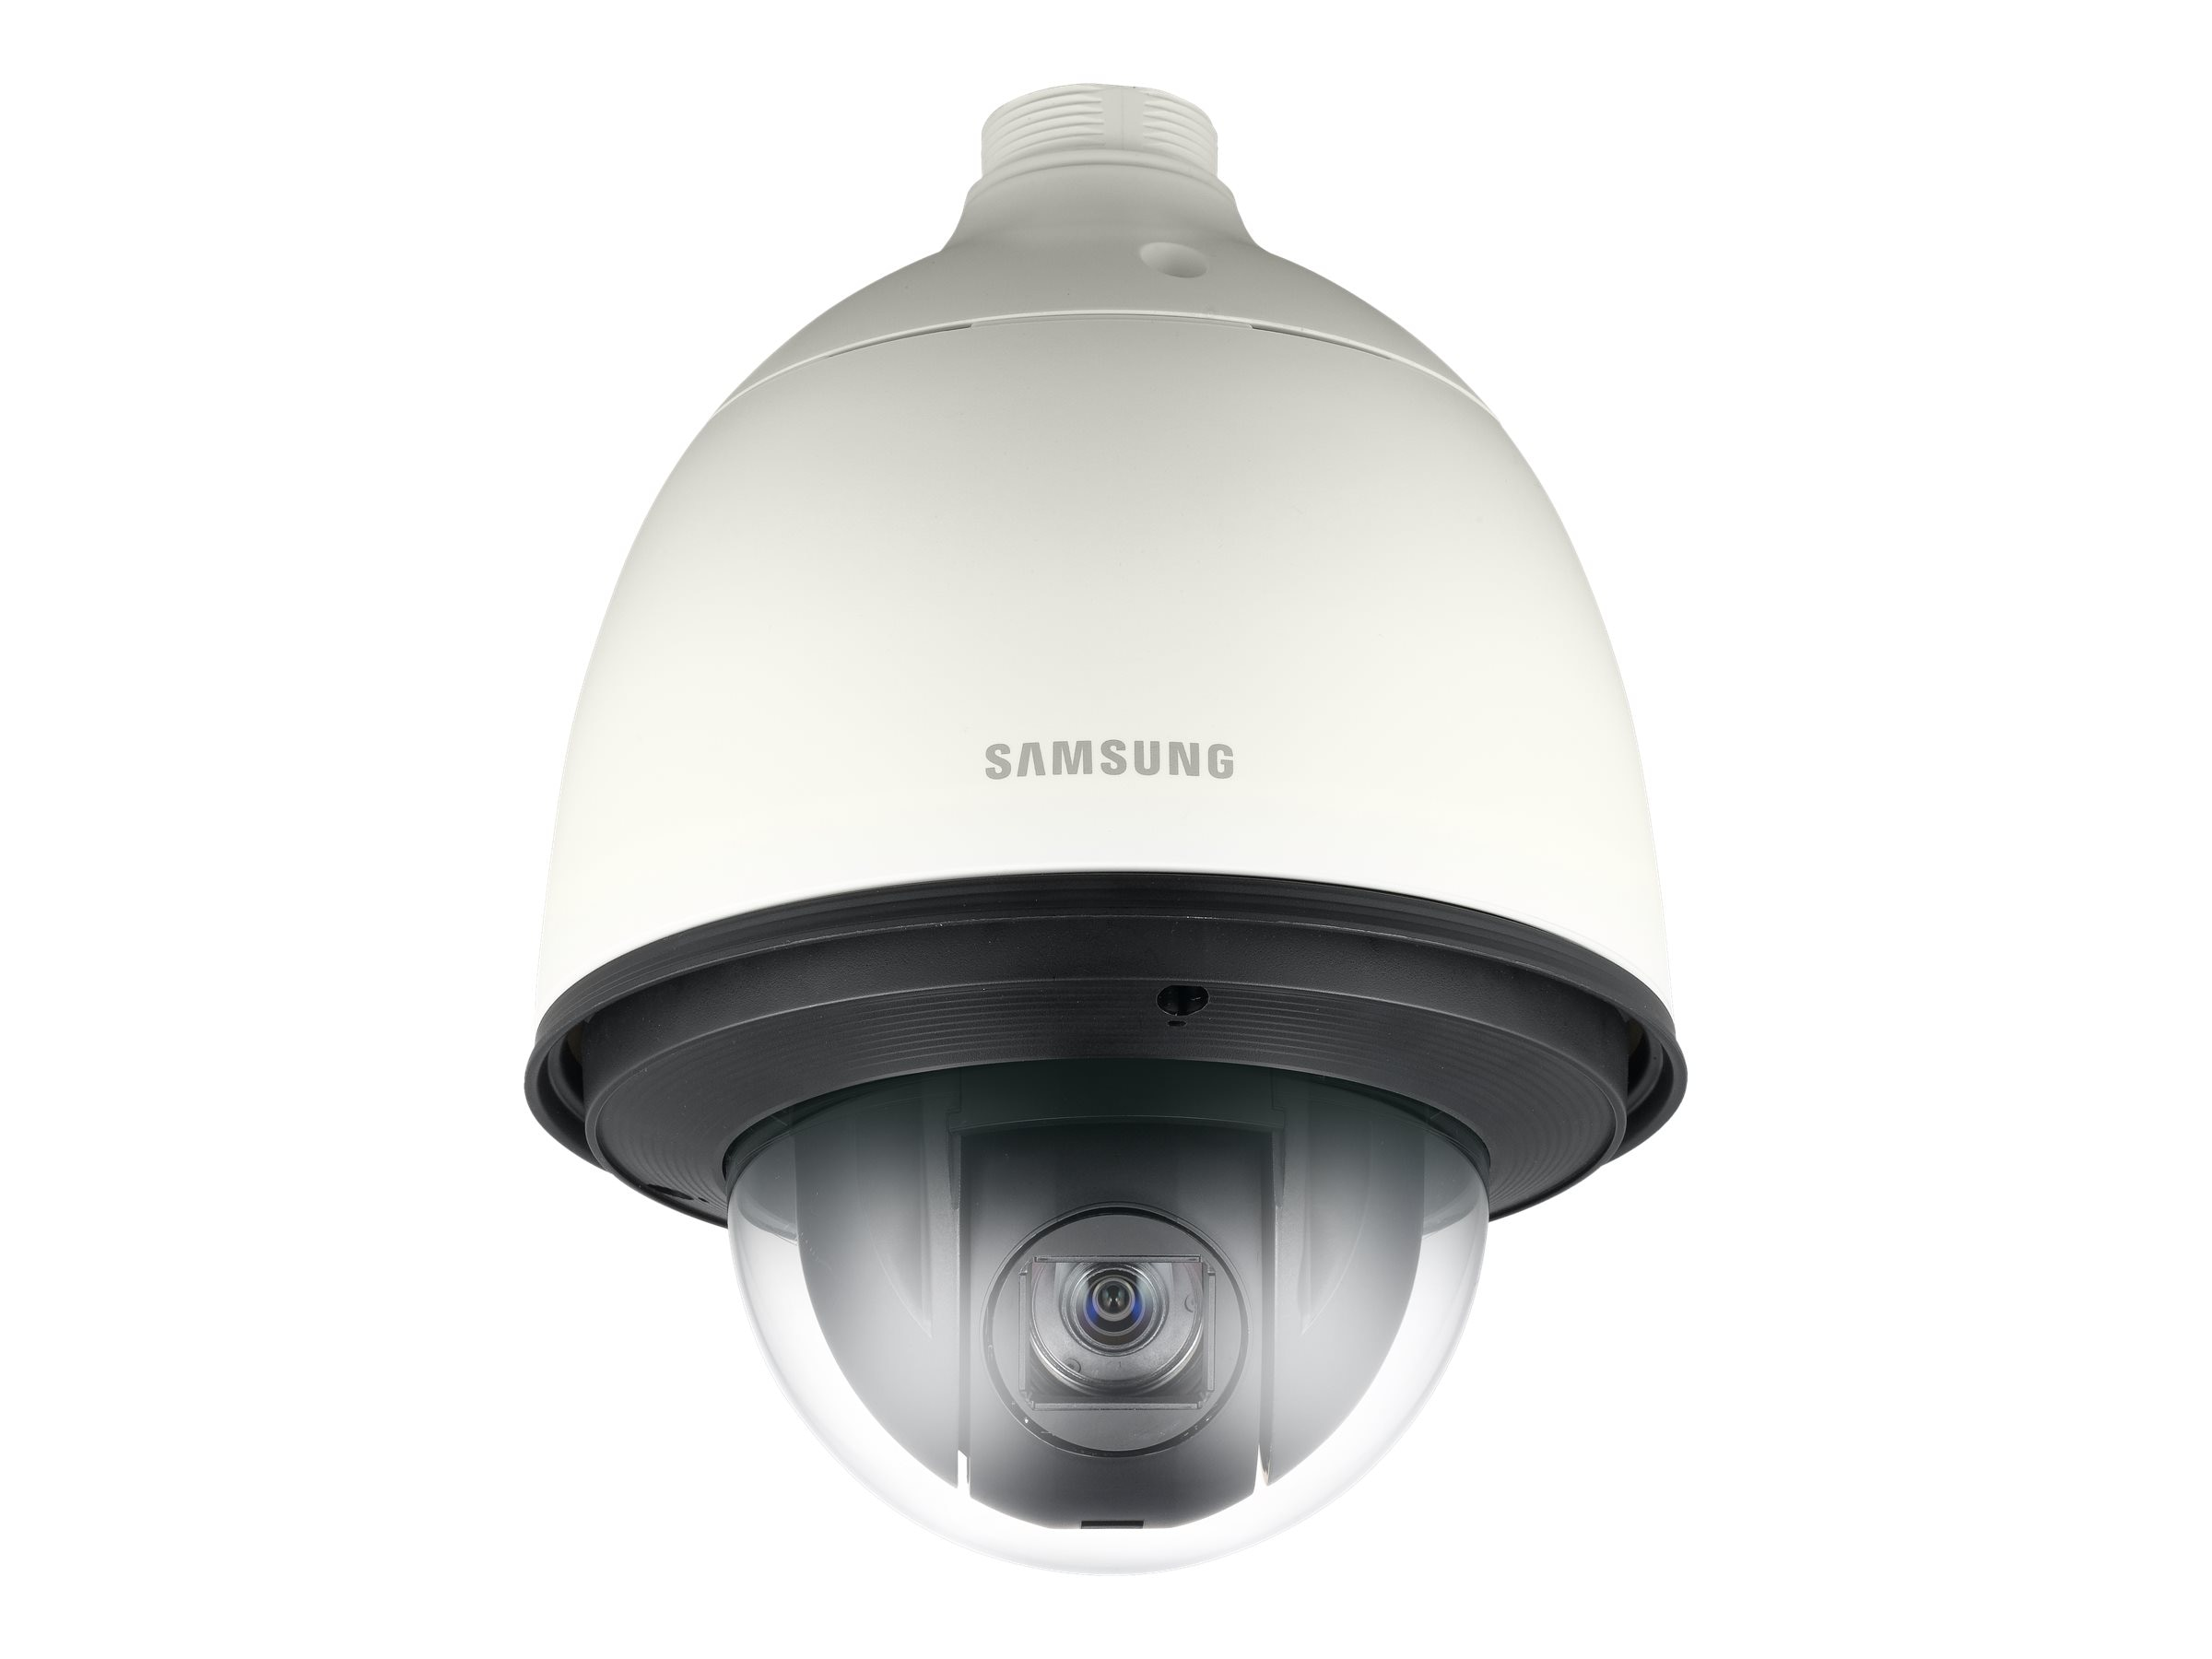 Samsung 1.3MP HD 23x Network PTZ Dome Camera, SNP-L5233H